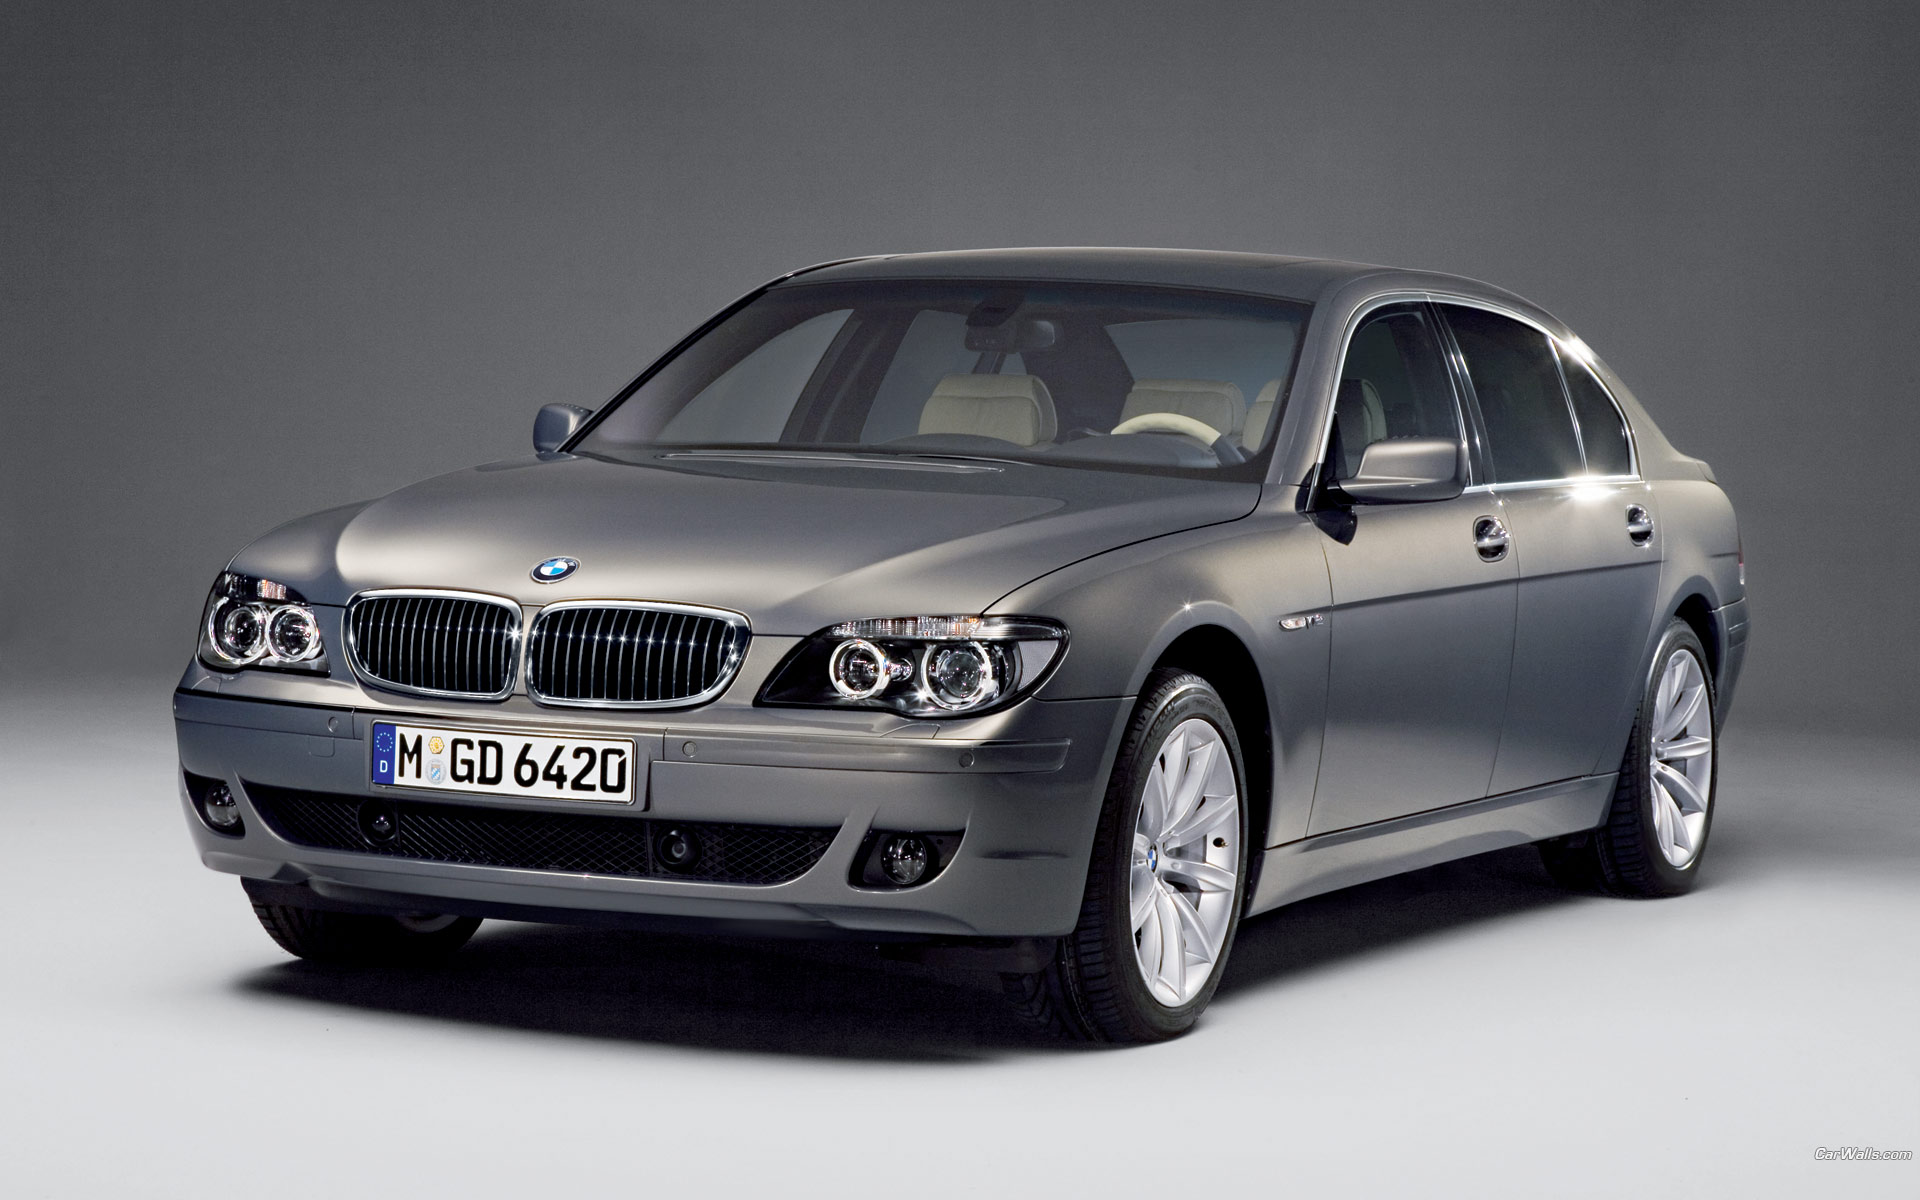 Bmw 730d 2007 Review Amazing Pictures And Images Look At The Car